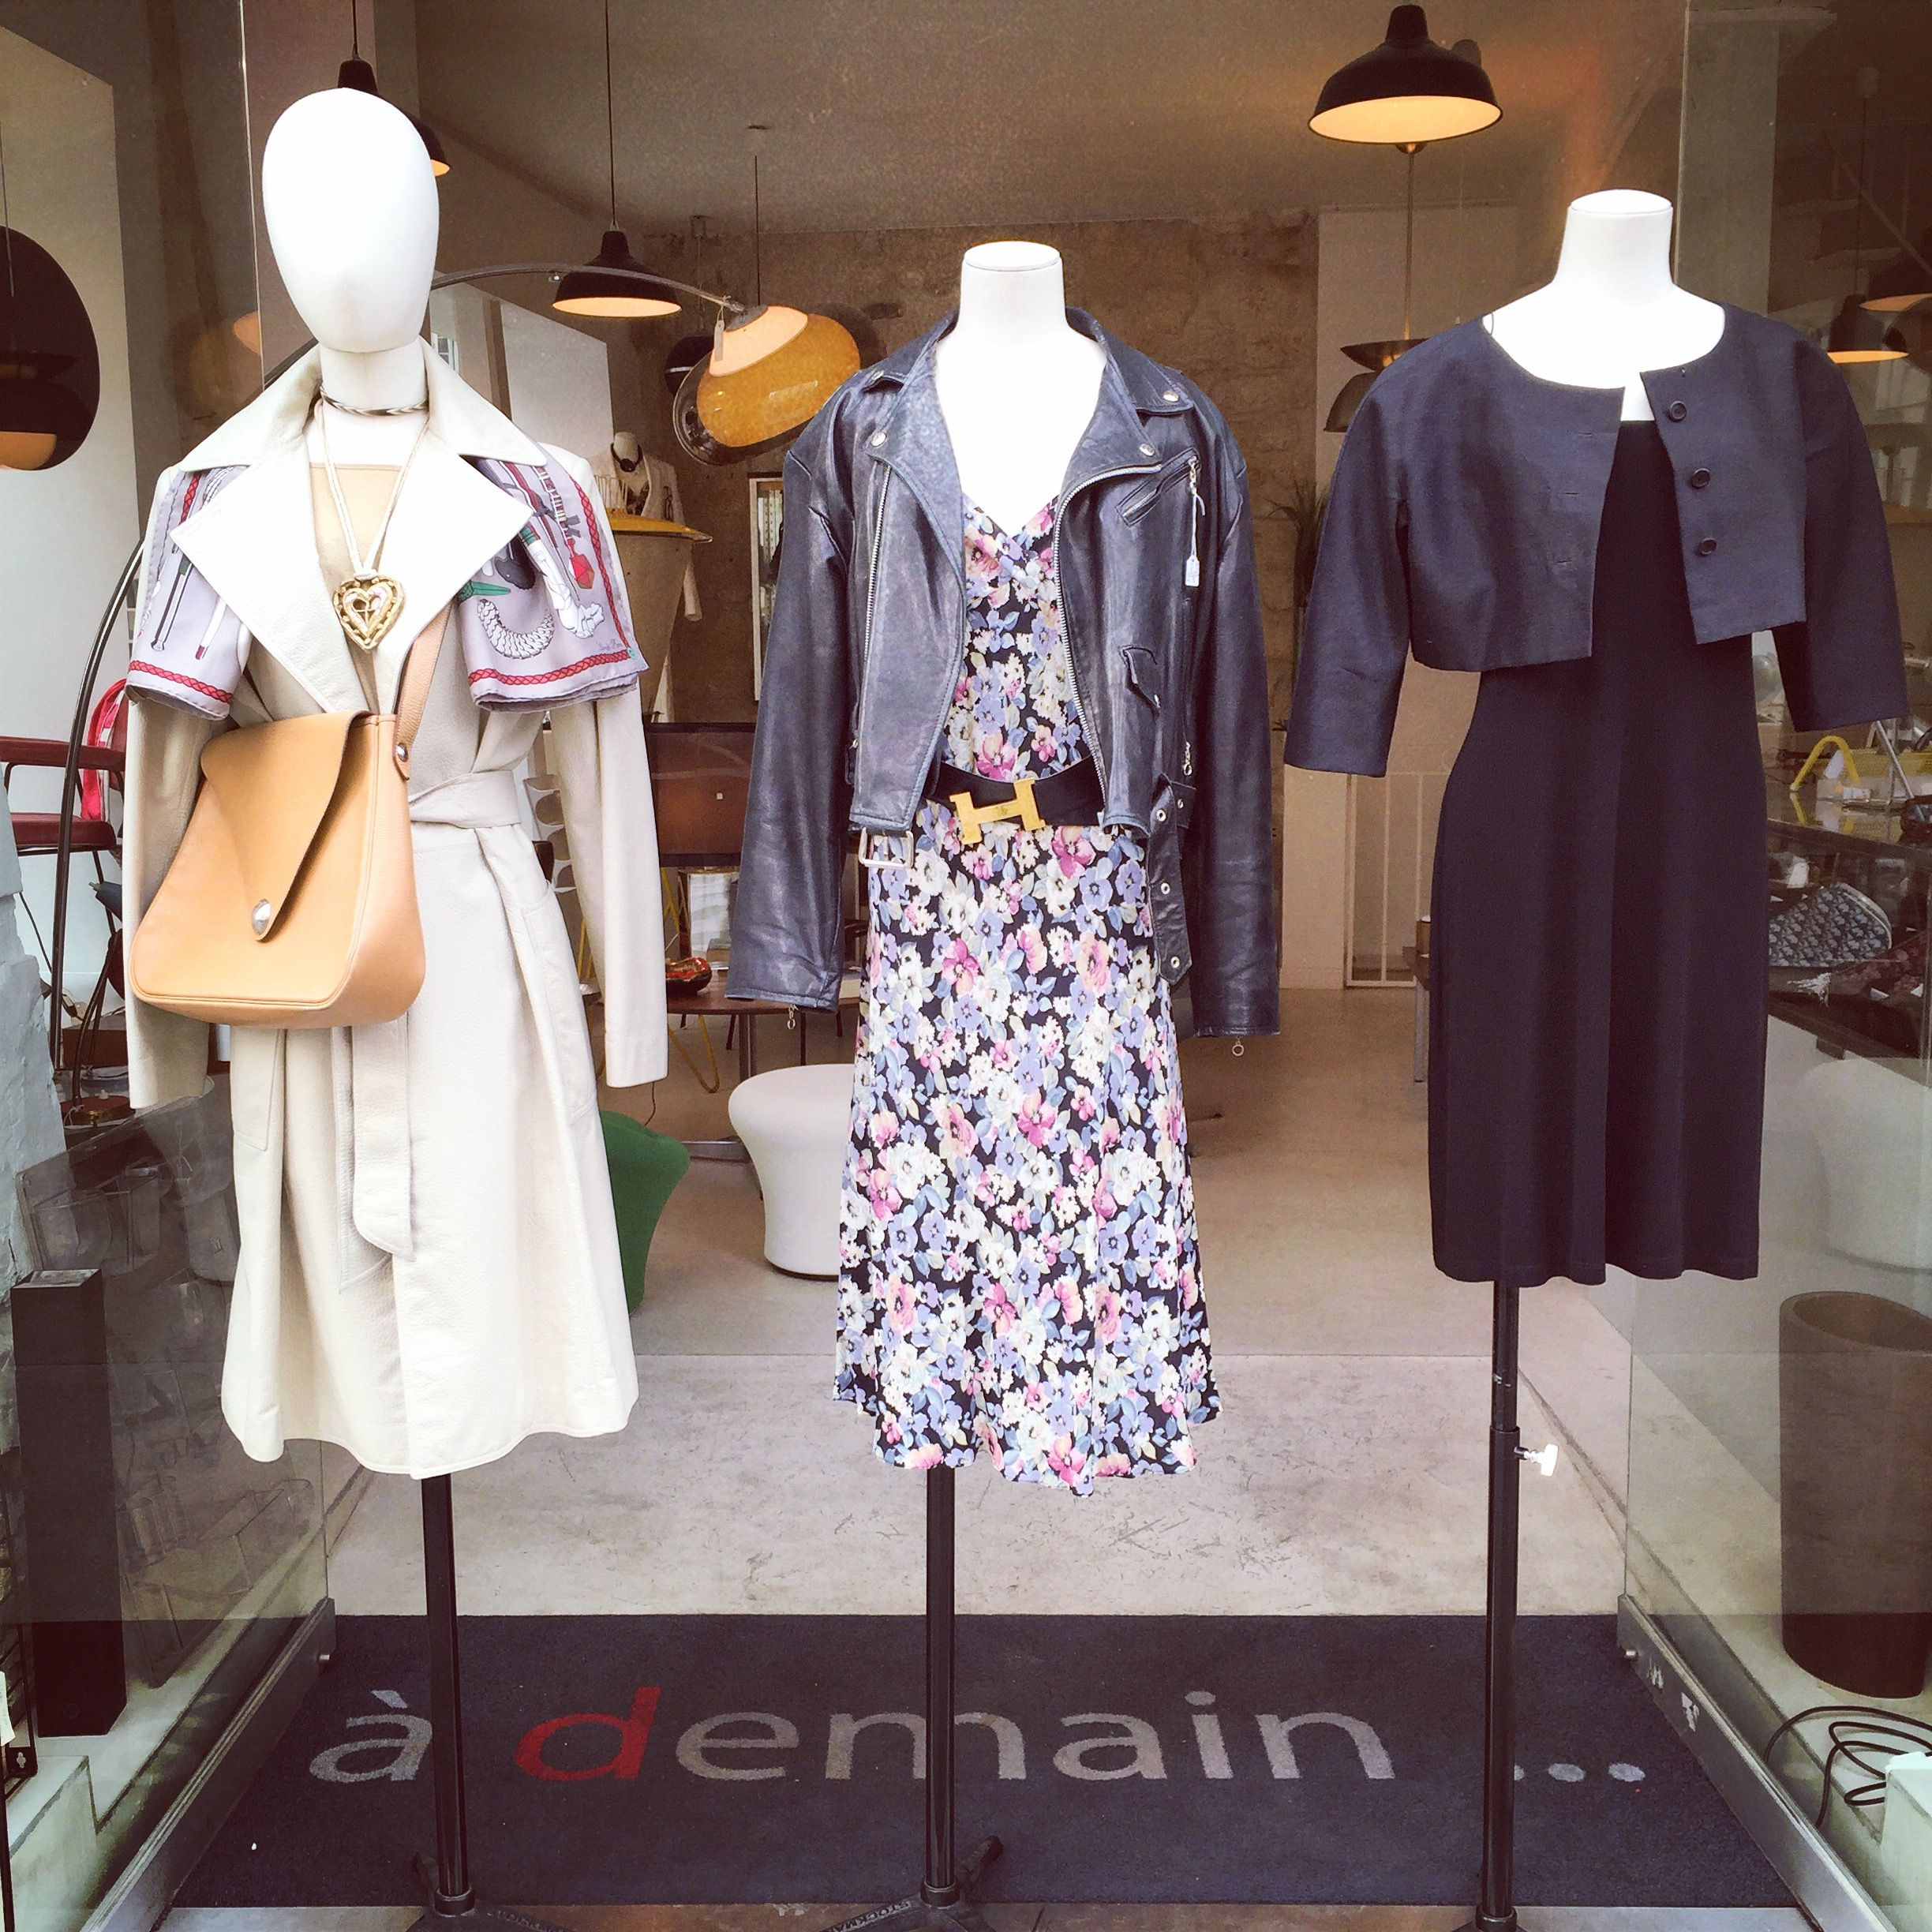 new vintage fashion items at the shop!